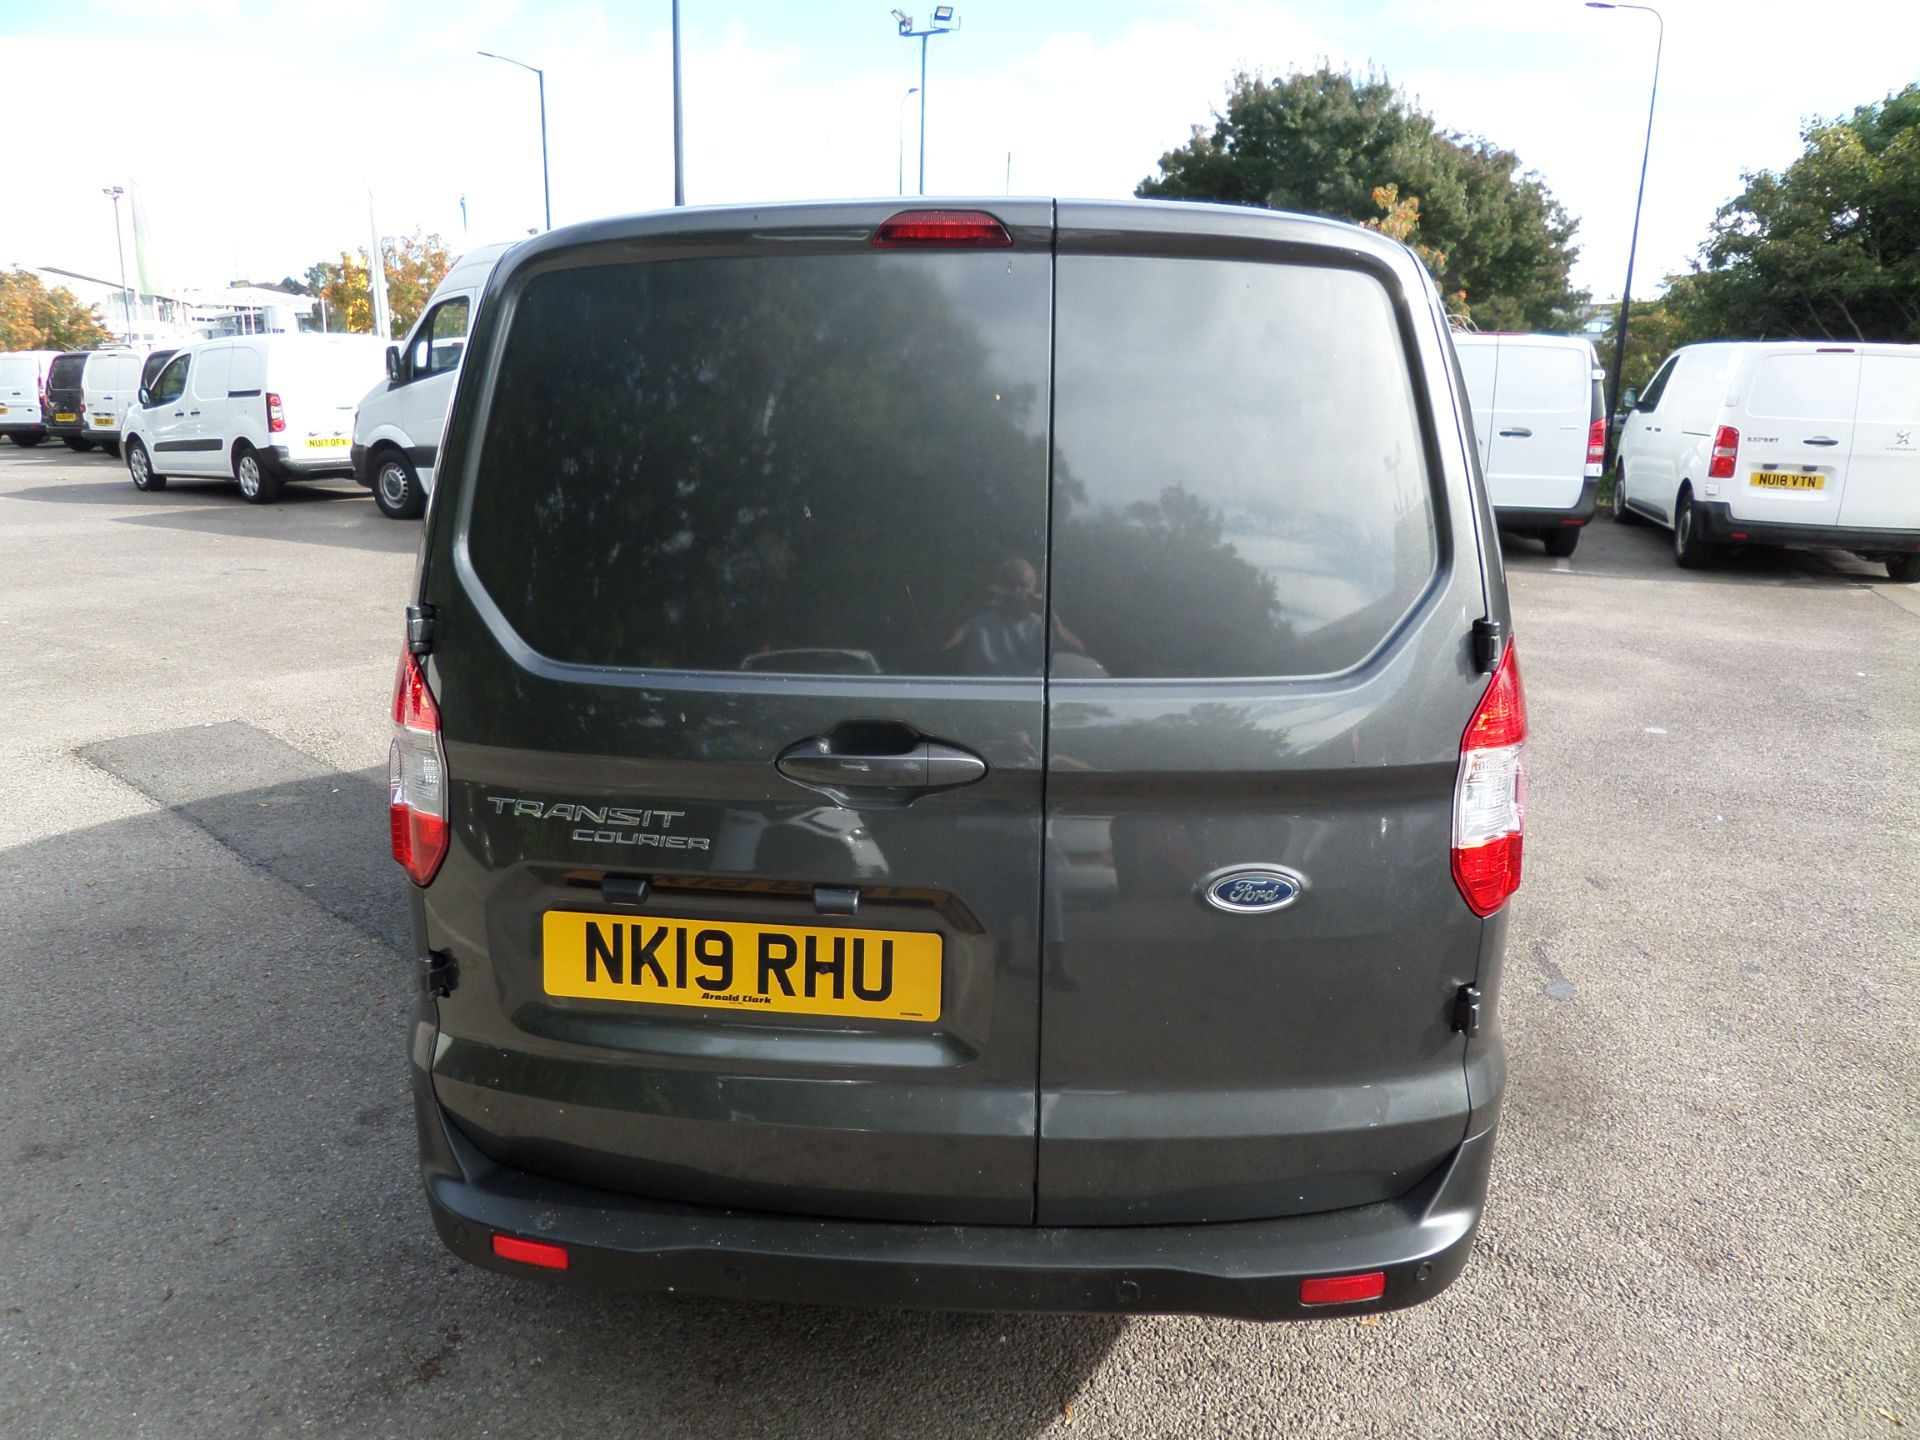 2019 Ford Transit Courier 1.5 Tdci 100Ps Limited Van [6 Speed] Euro 6 (NK19RHU) Image 3